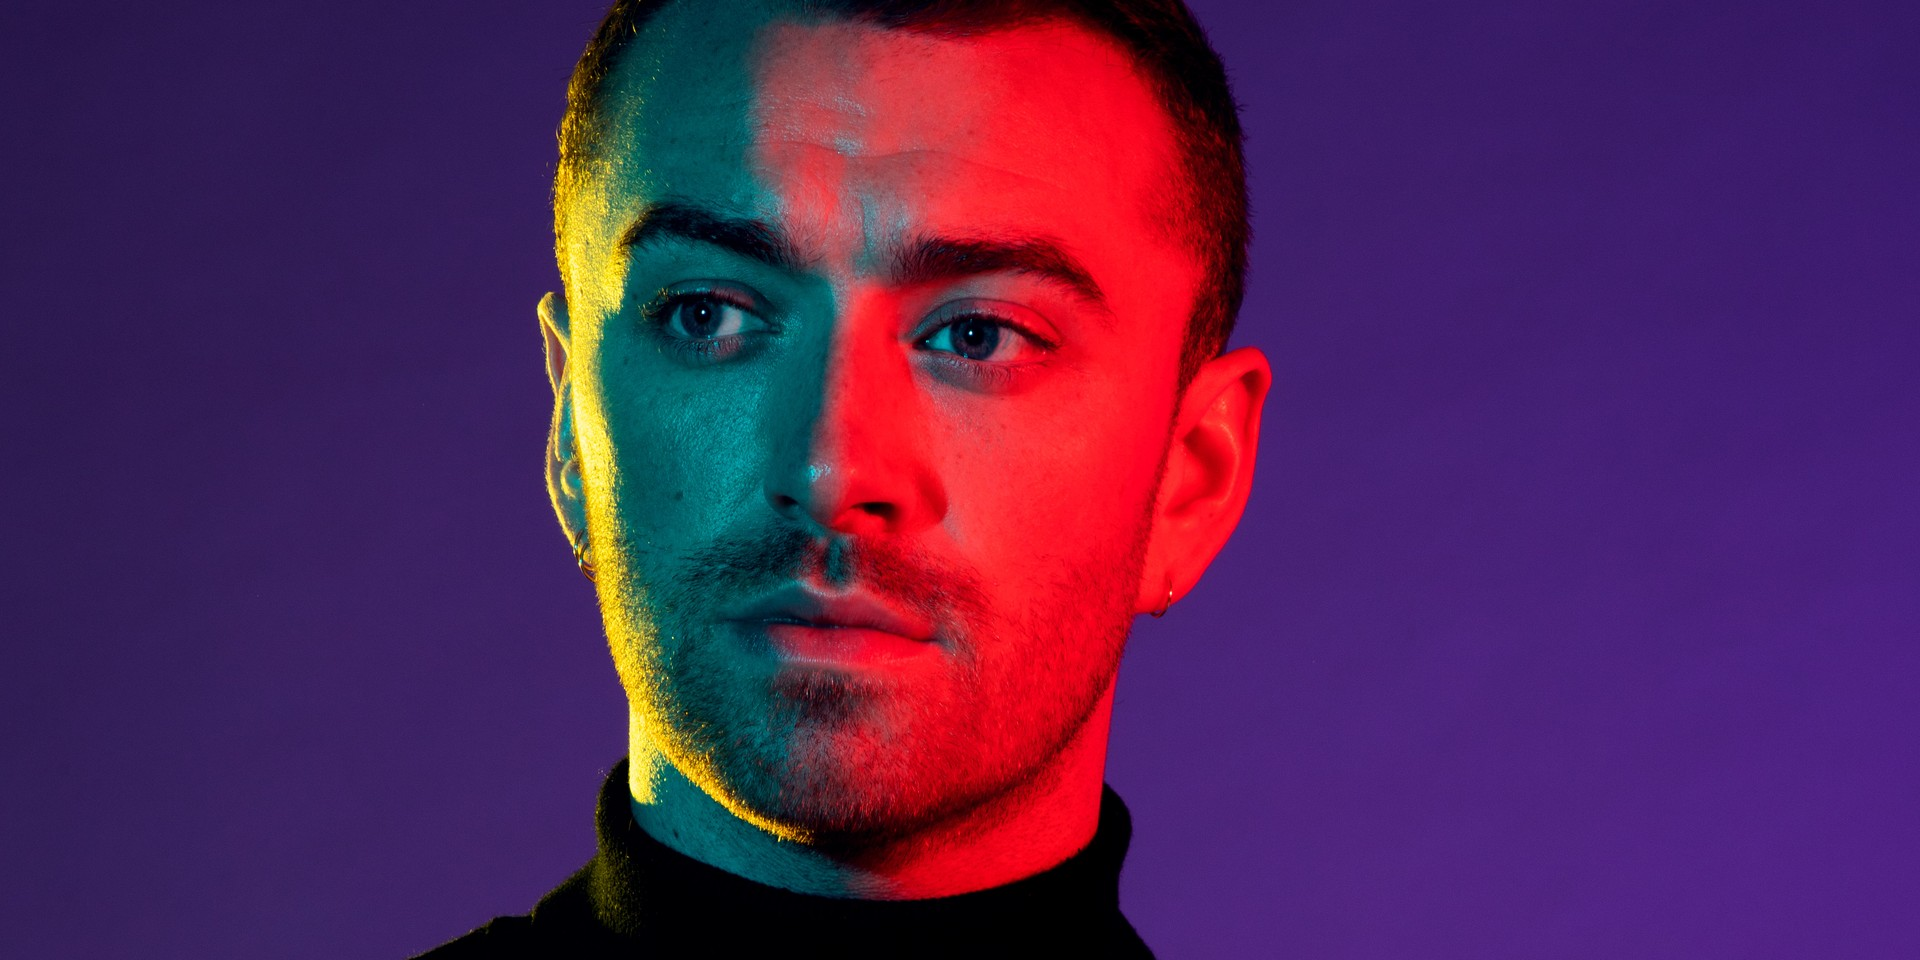 Sam Smith announces upcoming studio album in 2020 featuring a full-blown pop production